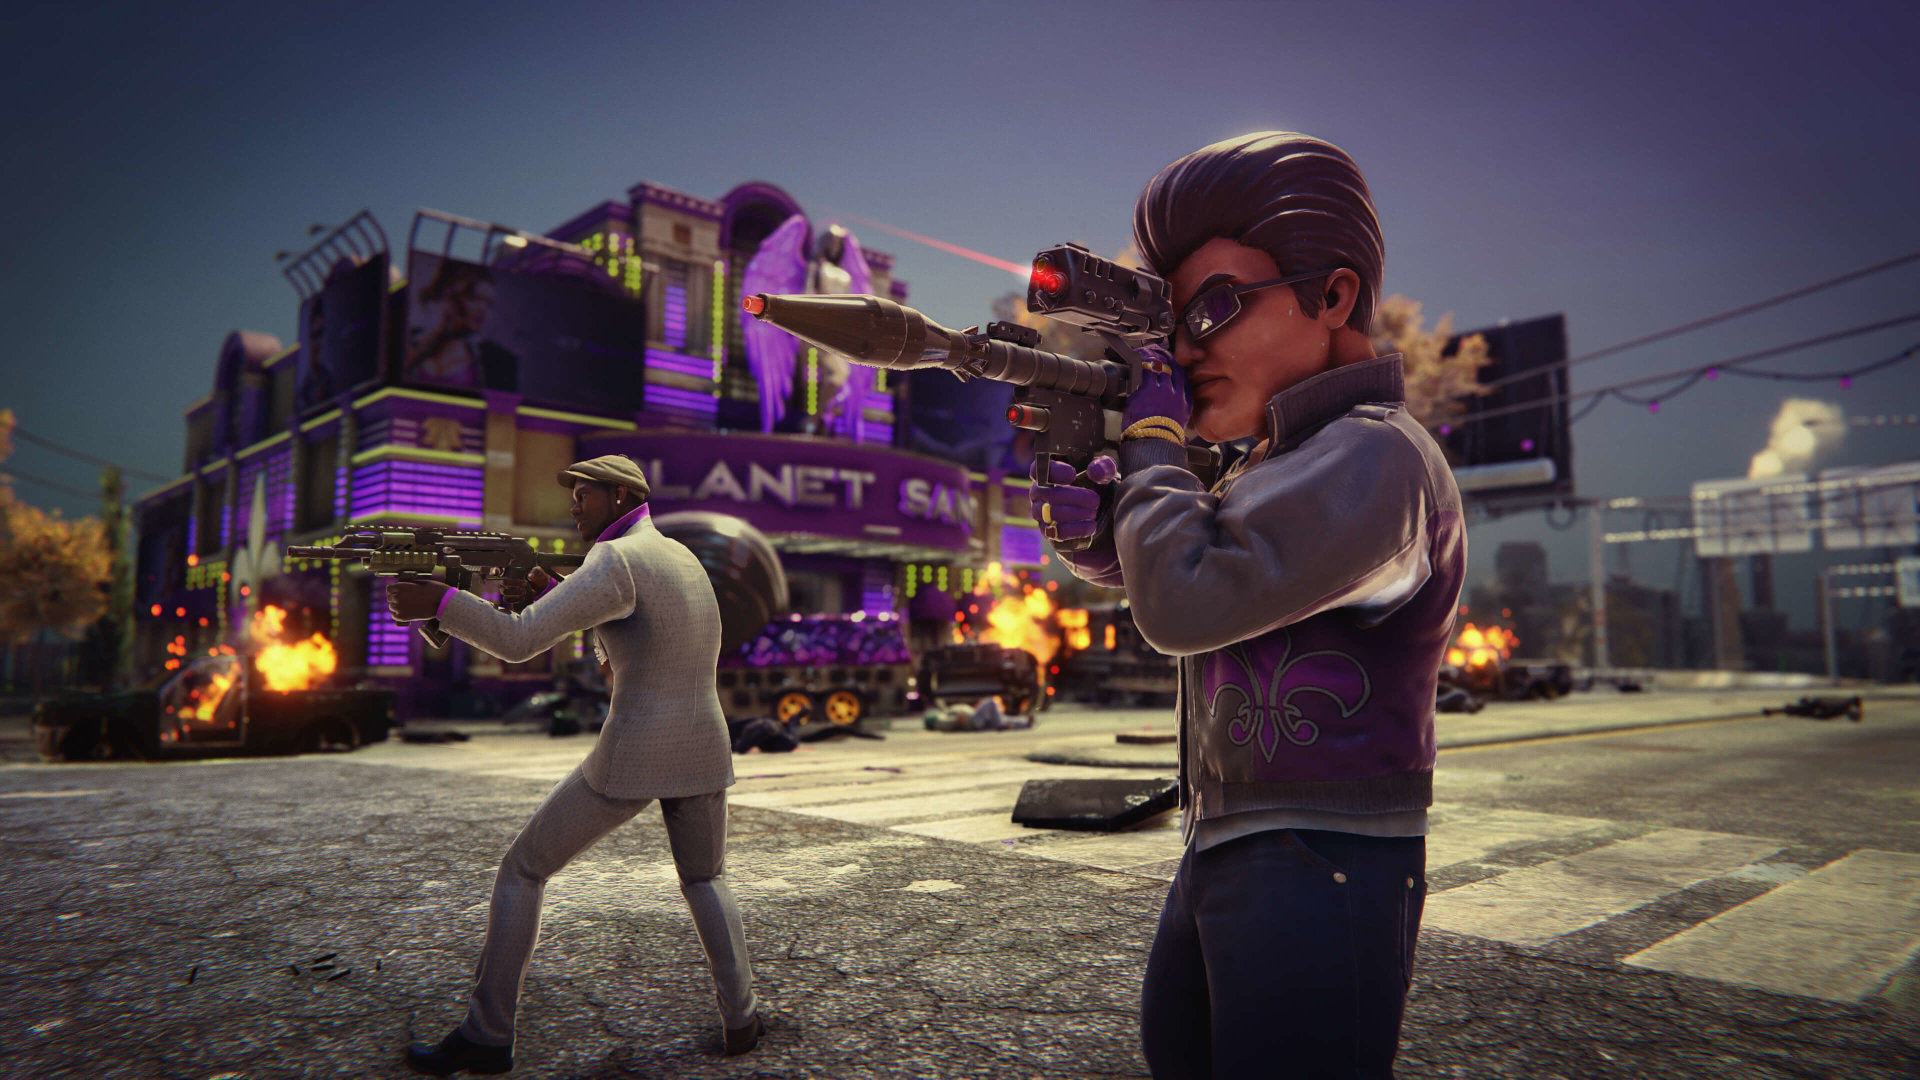 Saints Row: The Third Remastered revealed by leak | Rock Paper Shotgun